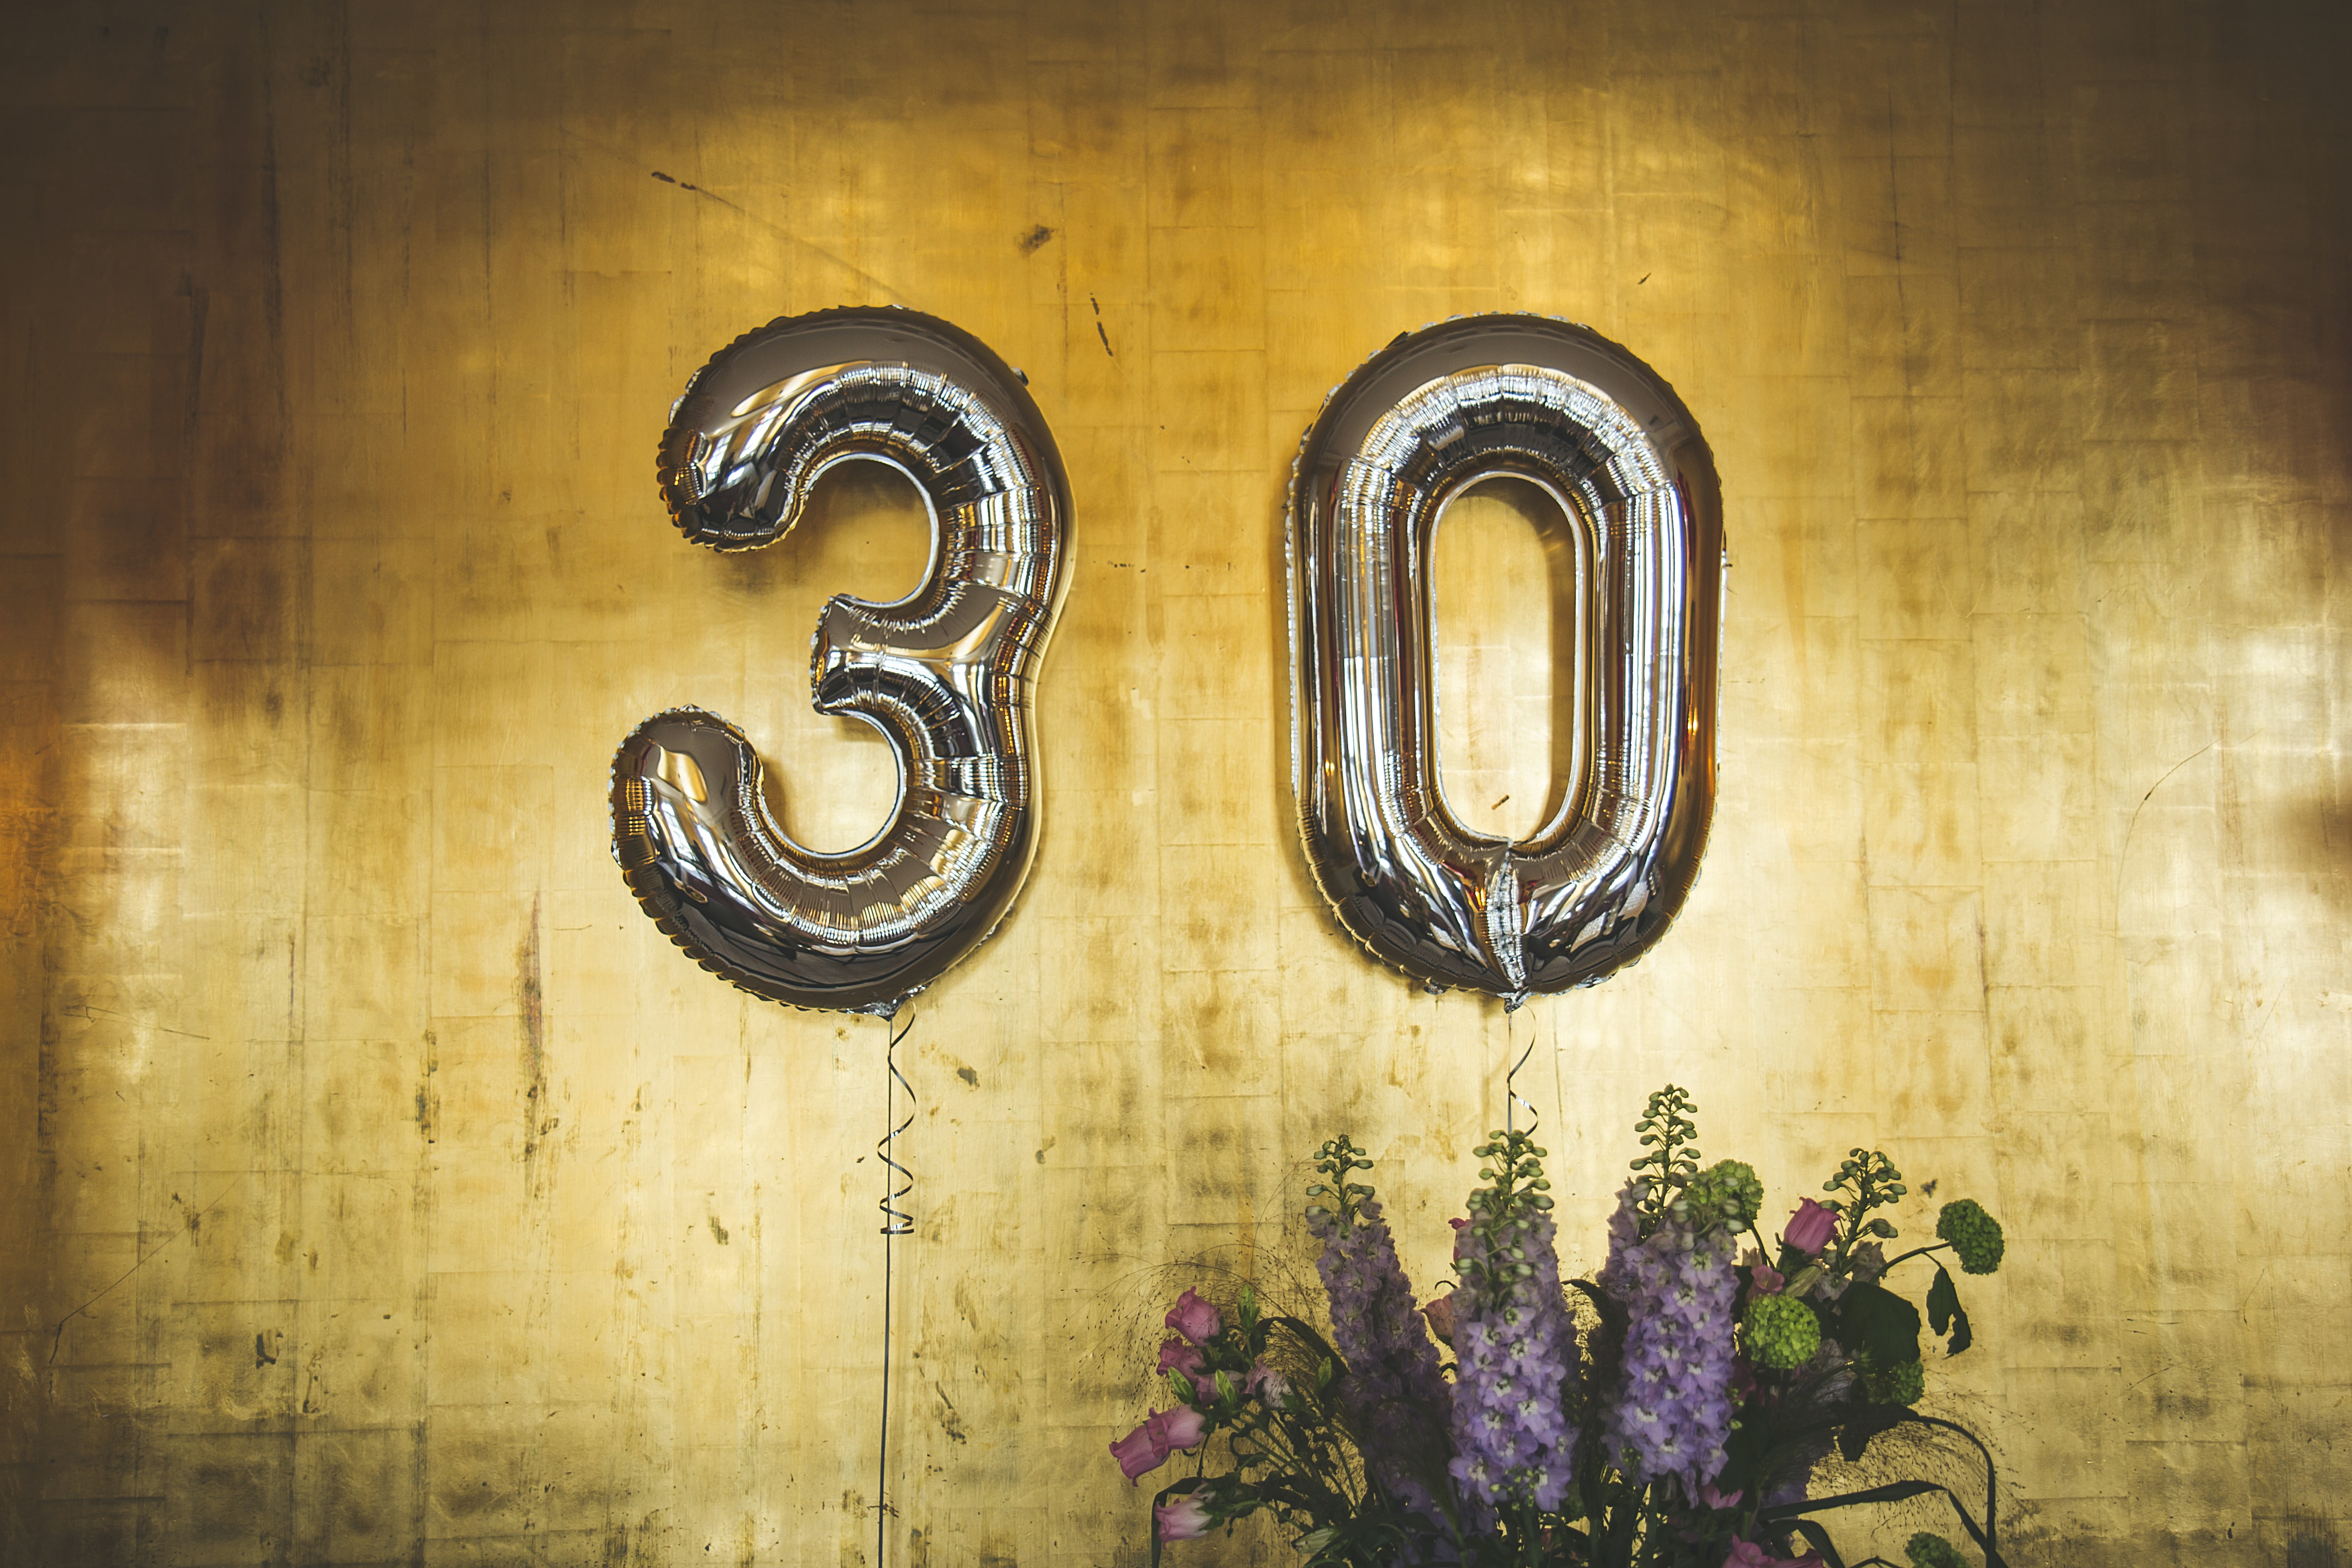 30th of February birthday stories